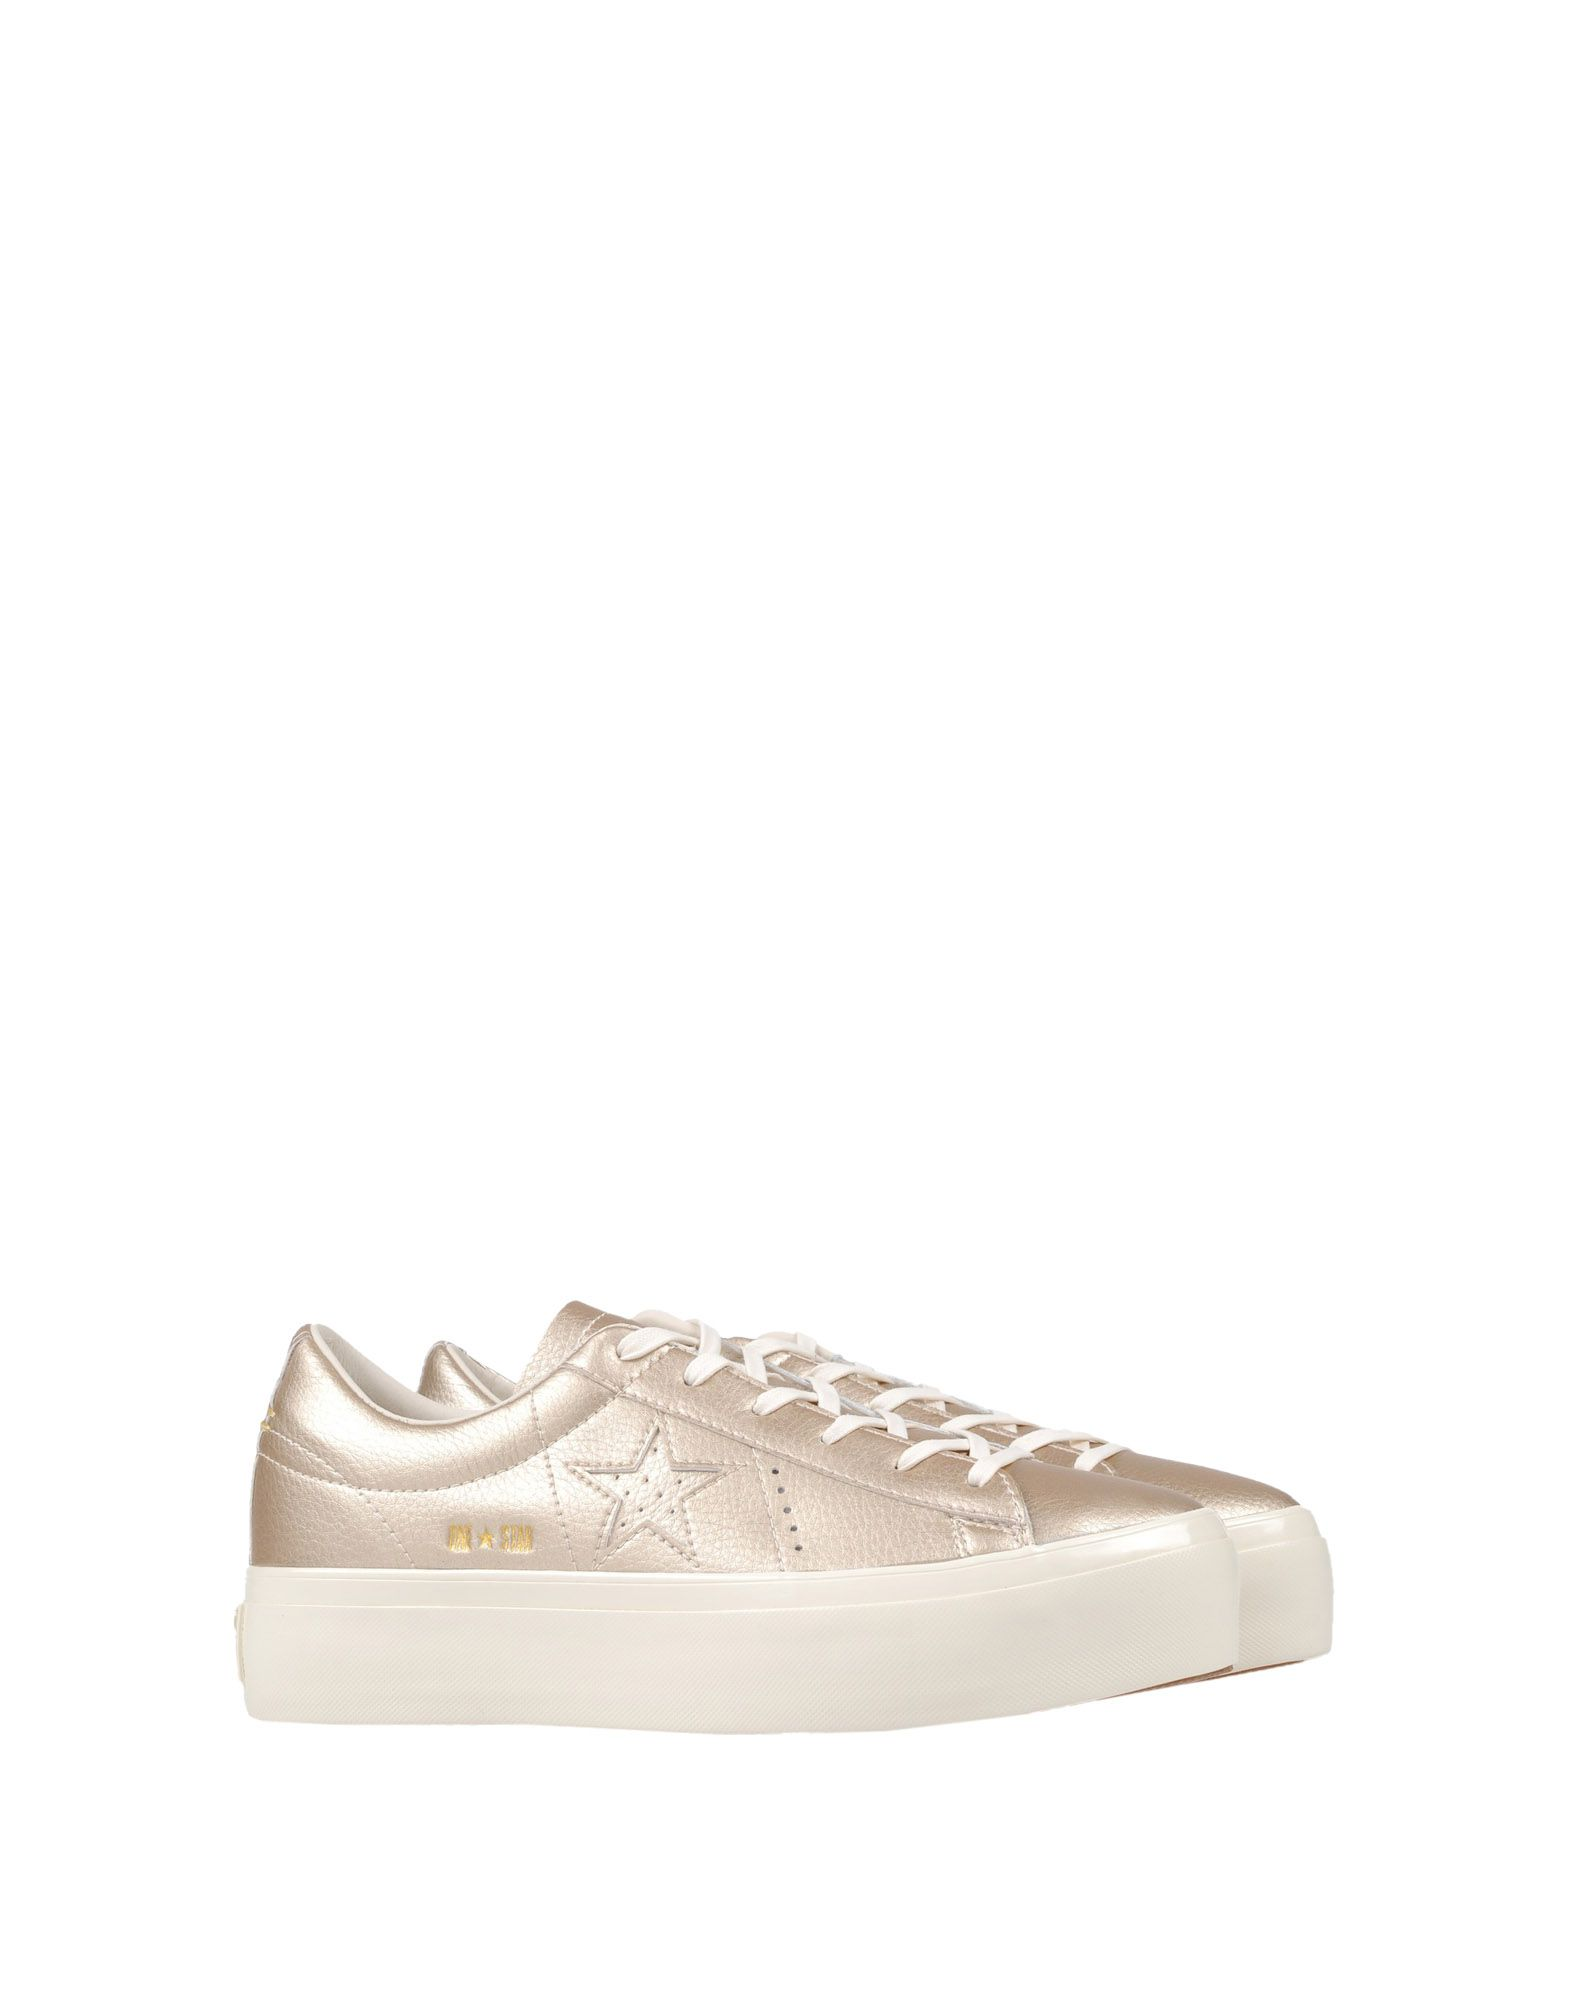 Sneakers Converse All Star One Star Platform Ox Metallic Leather - Femme - Sneakers Converse All Star sur